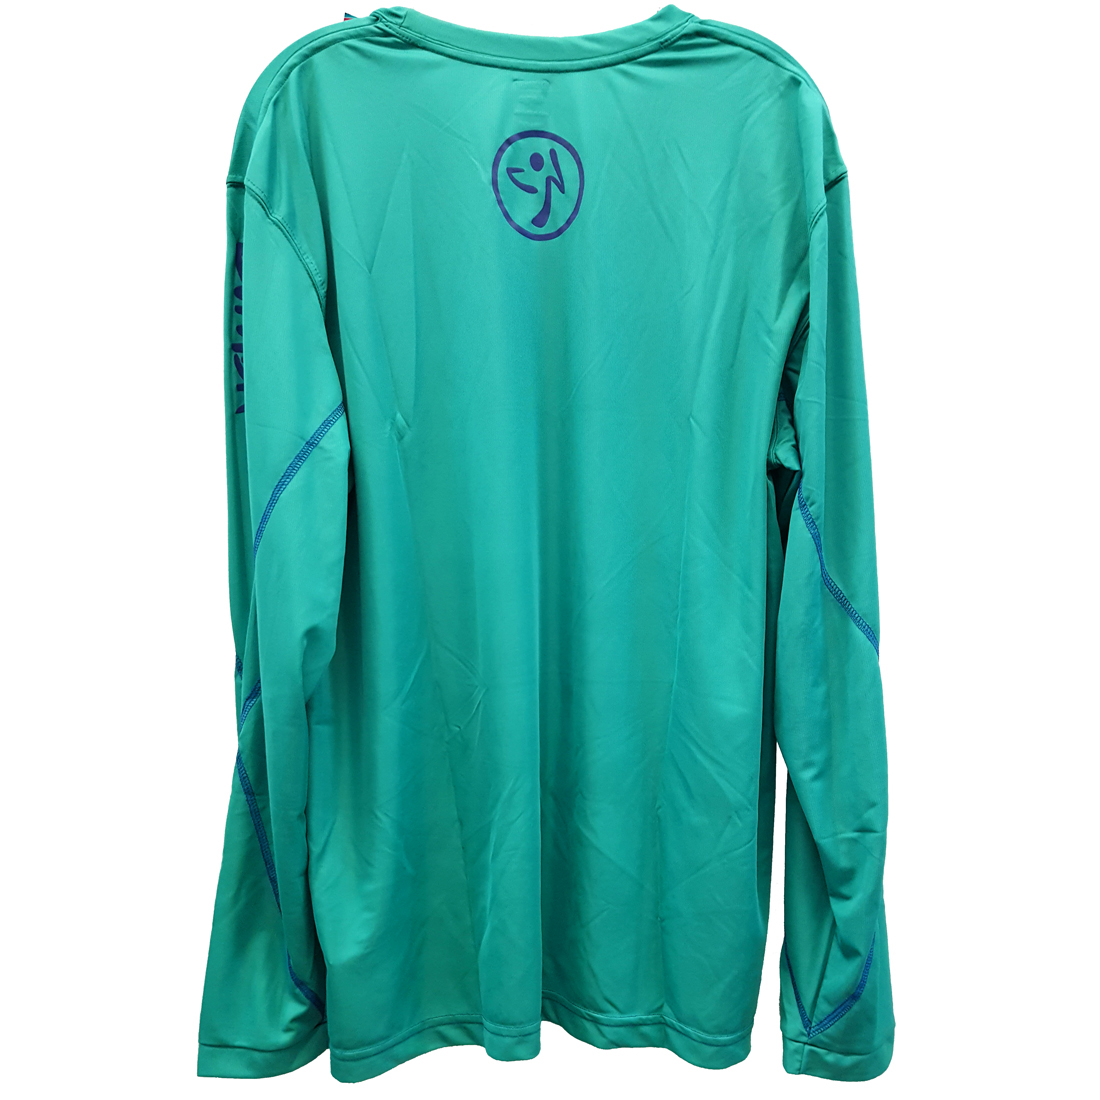 Zumba-Fitness-Men-039-s-Logo-Long-Sleeve-Shirt thumbnail 8